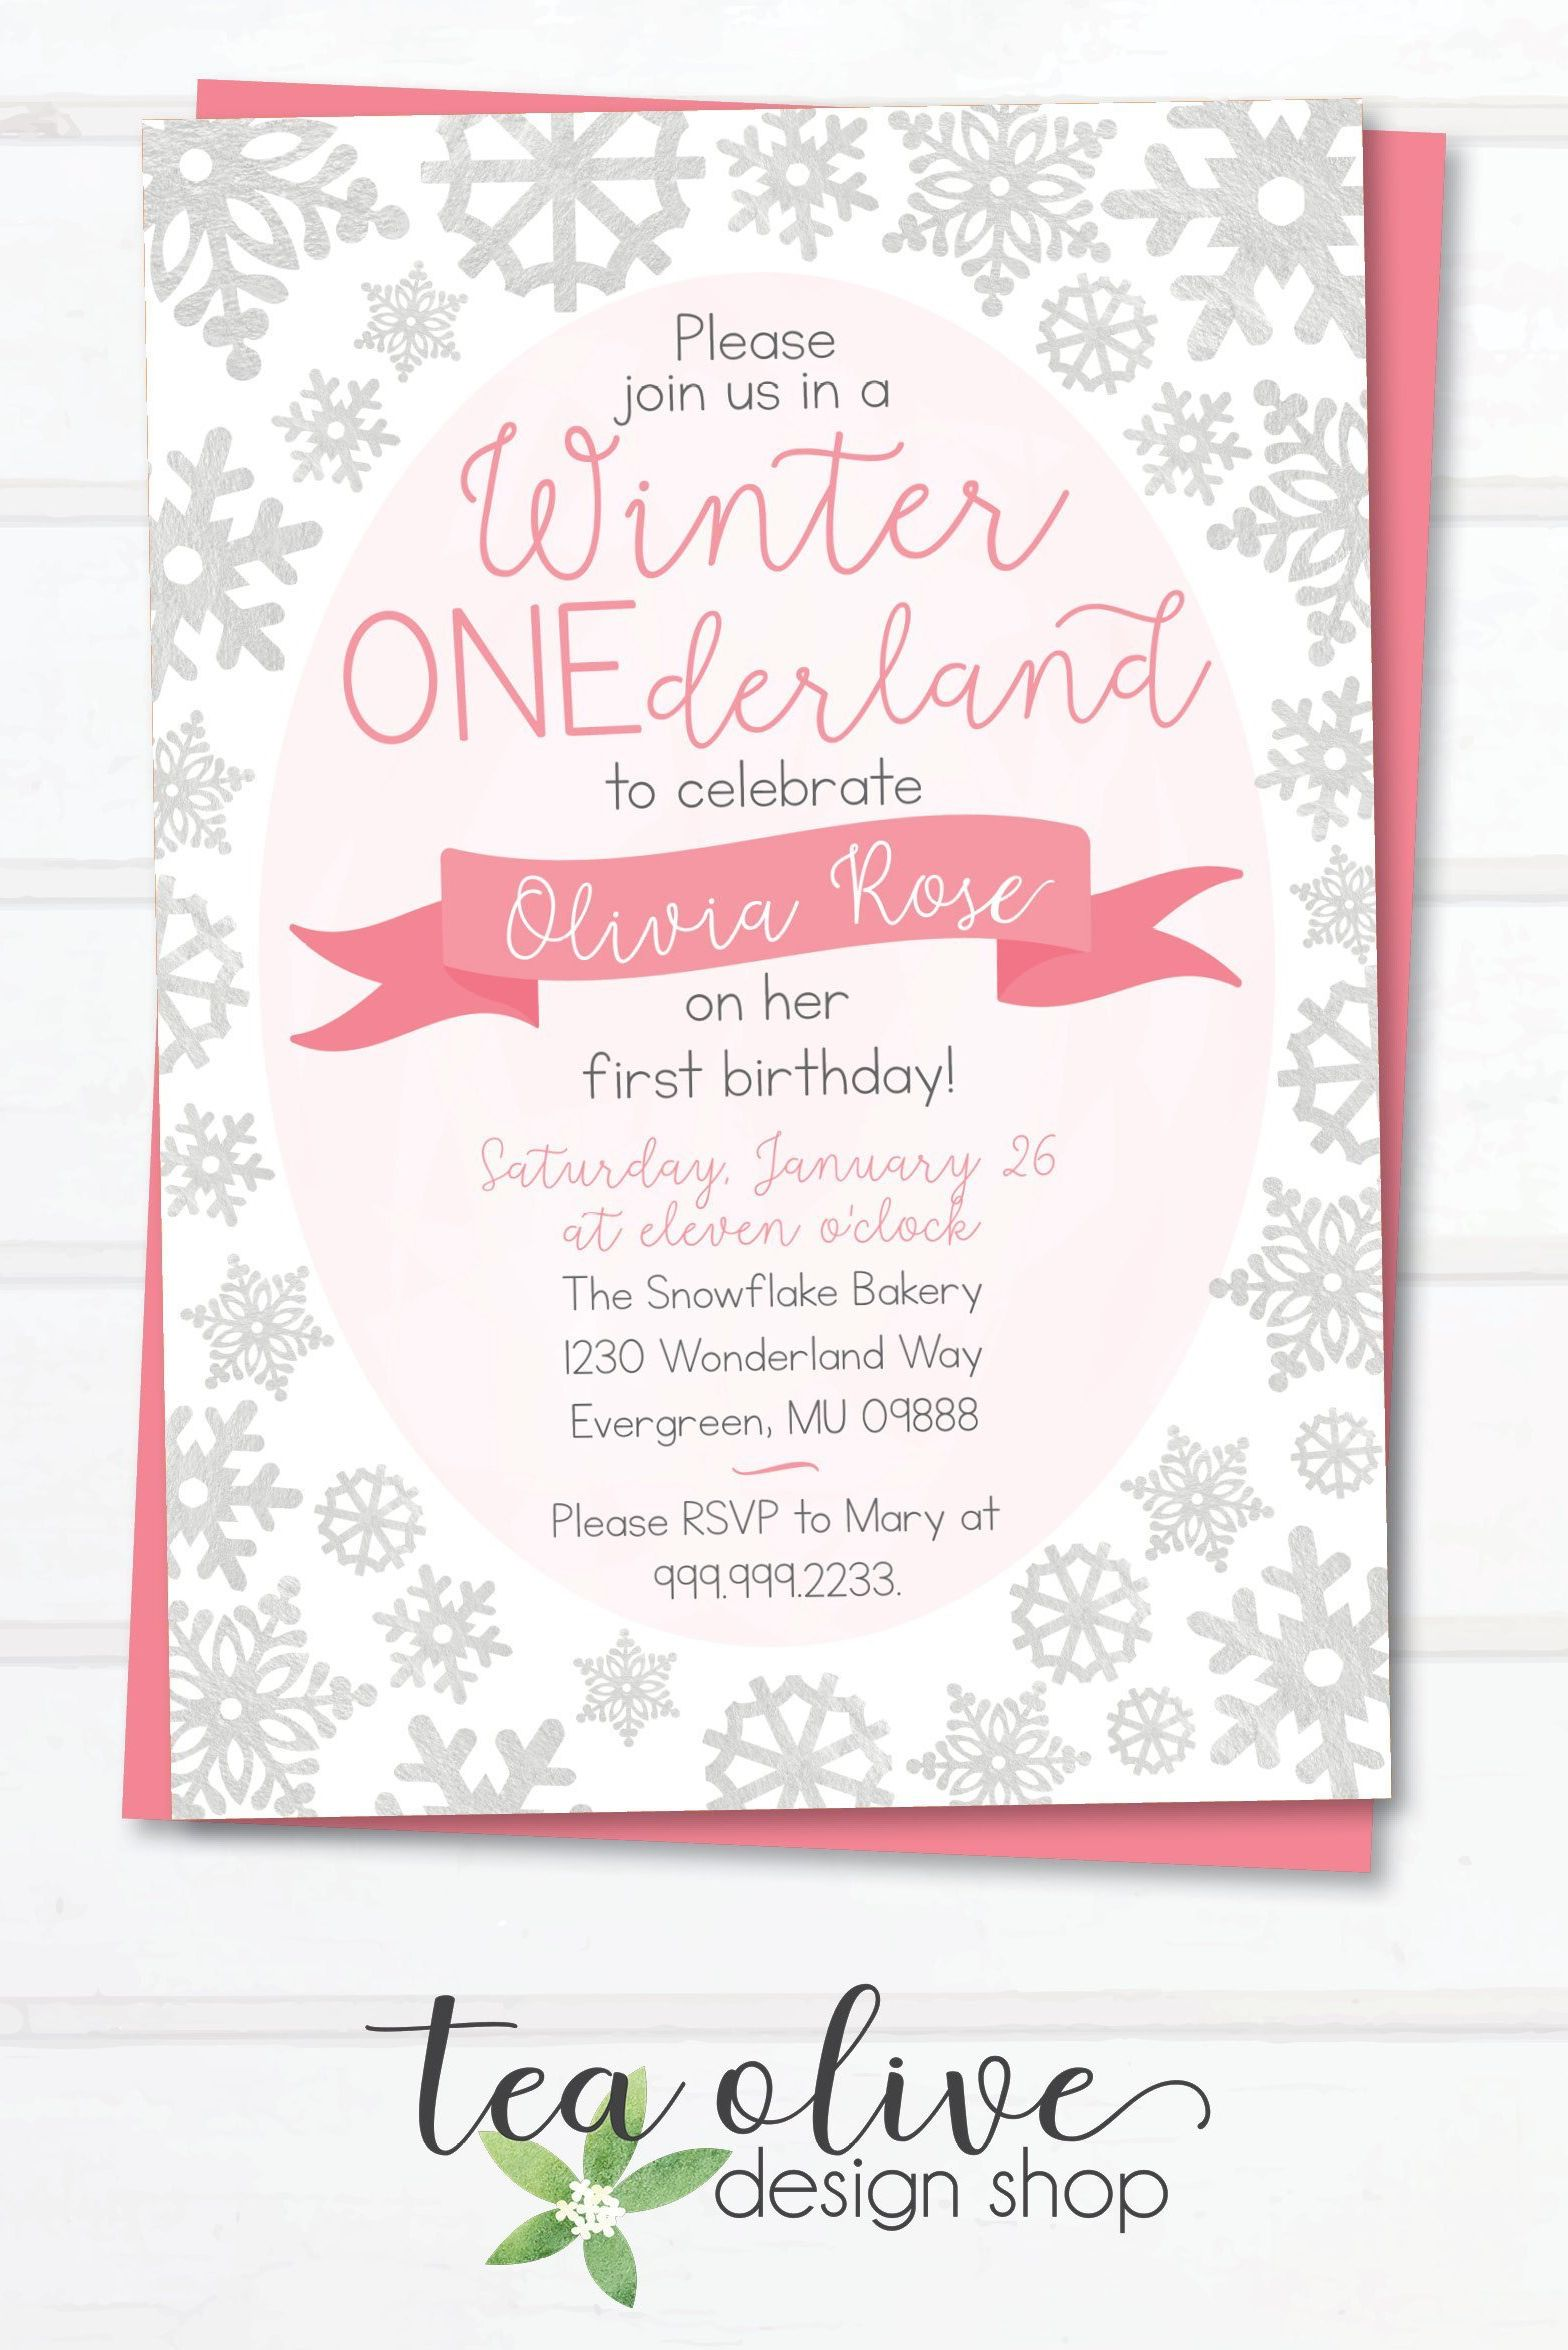 Winter Onederland Birthday Party Invitation Winter Wonderland